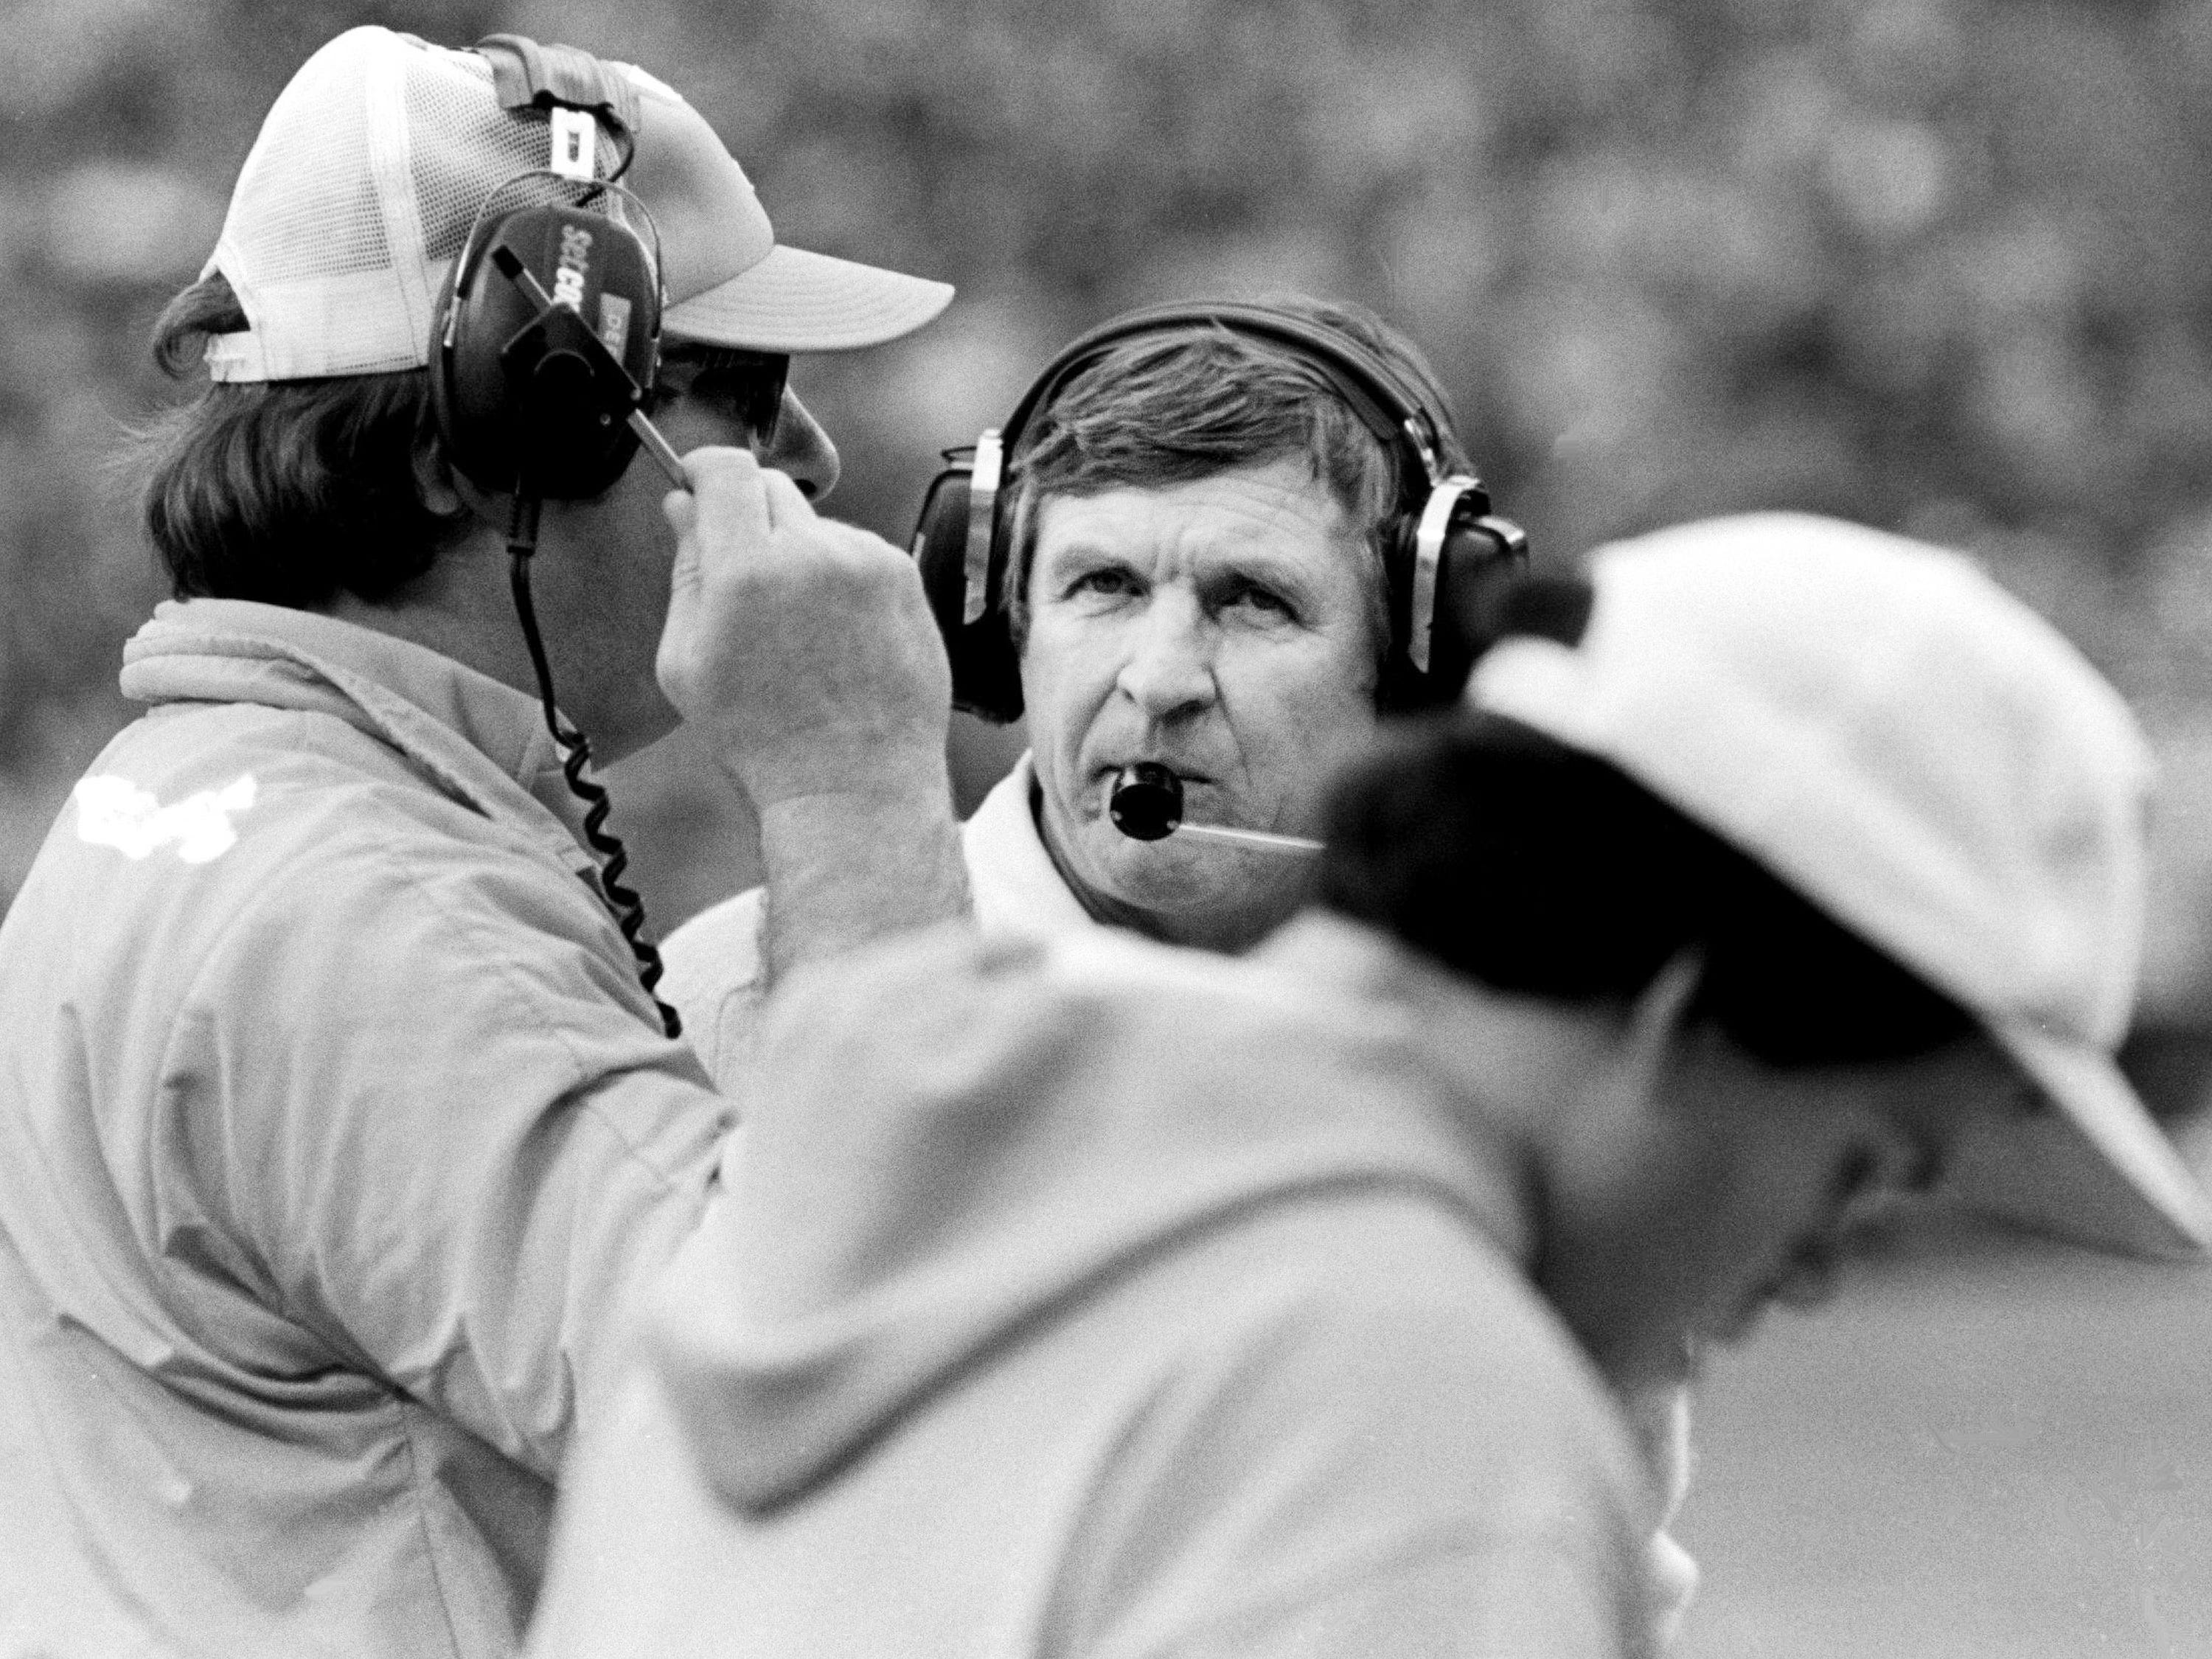 Tennessee head coach Johnny Majors, center, checks with assistant coach Bill Shaw, left, on the sidelines in their Peach Bowl game with Iowa in Atlanta Dec. 31, 1982.